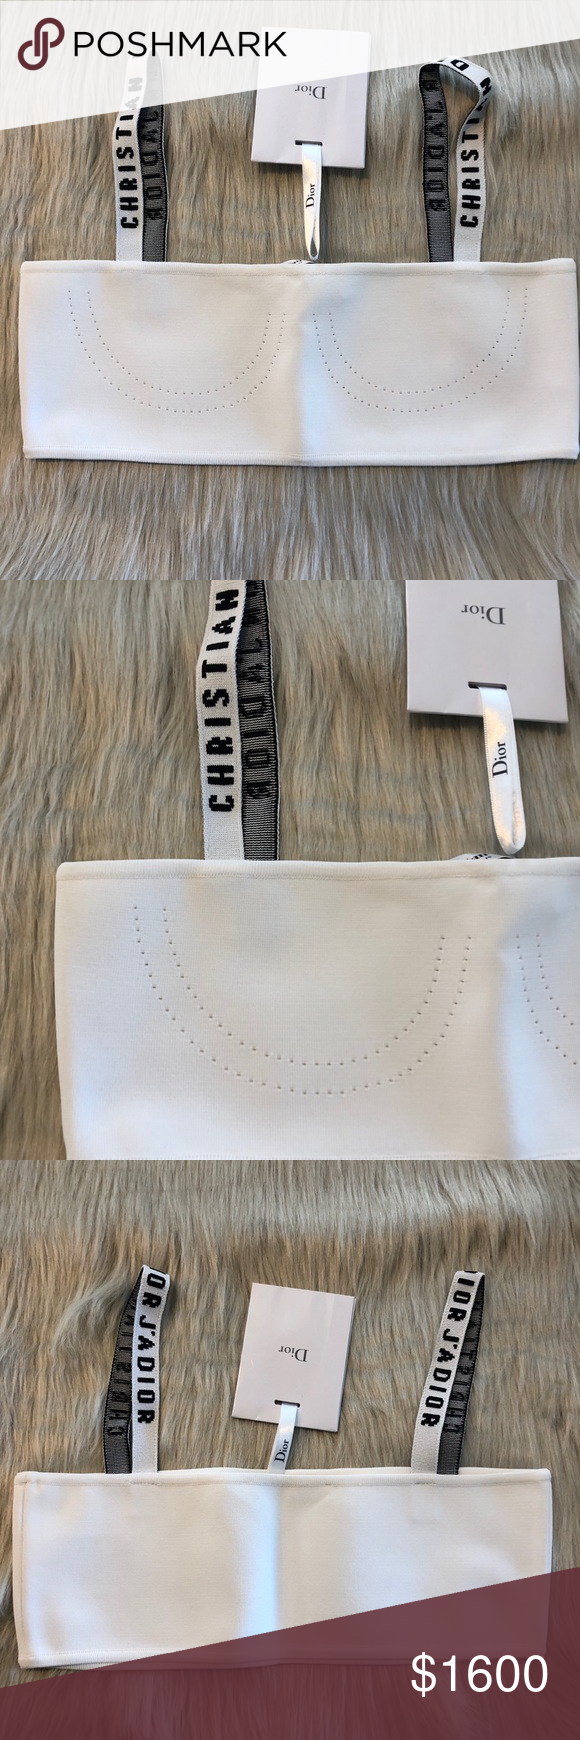 f19669fed5709 Authentic Dior Bralette Bandeau. White size Small Brand new with tags white bandeau  bralette in white size small. Authentic with tags still attached